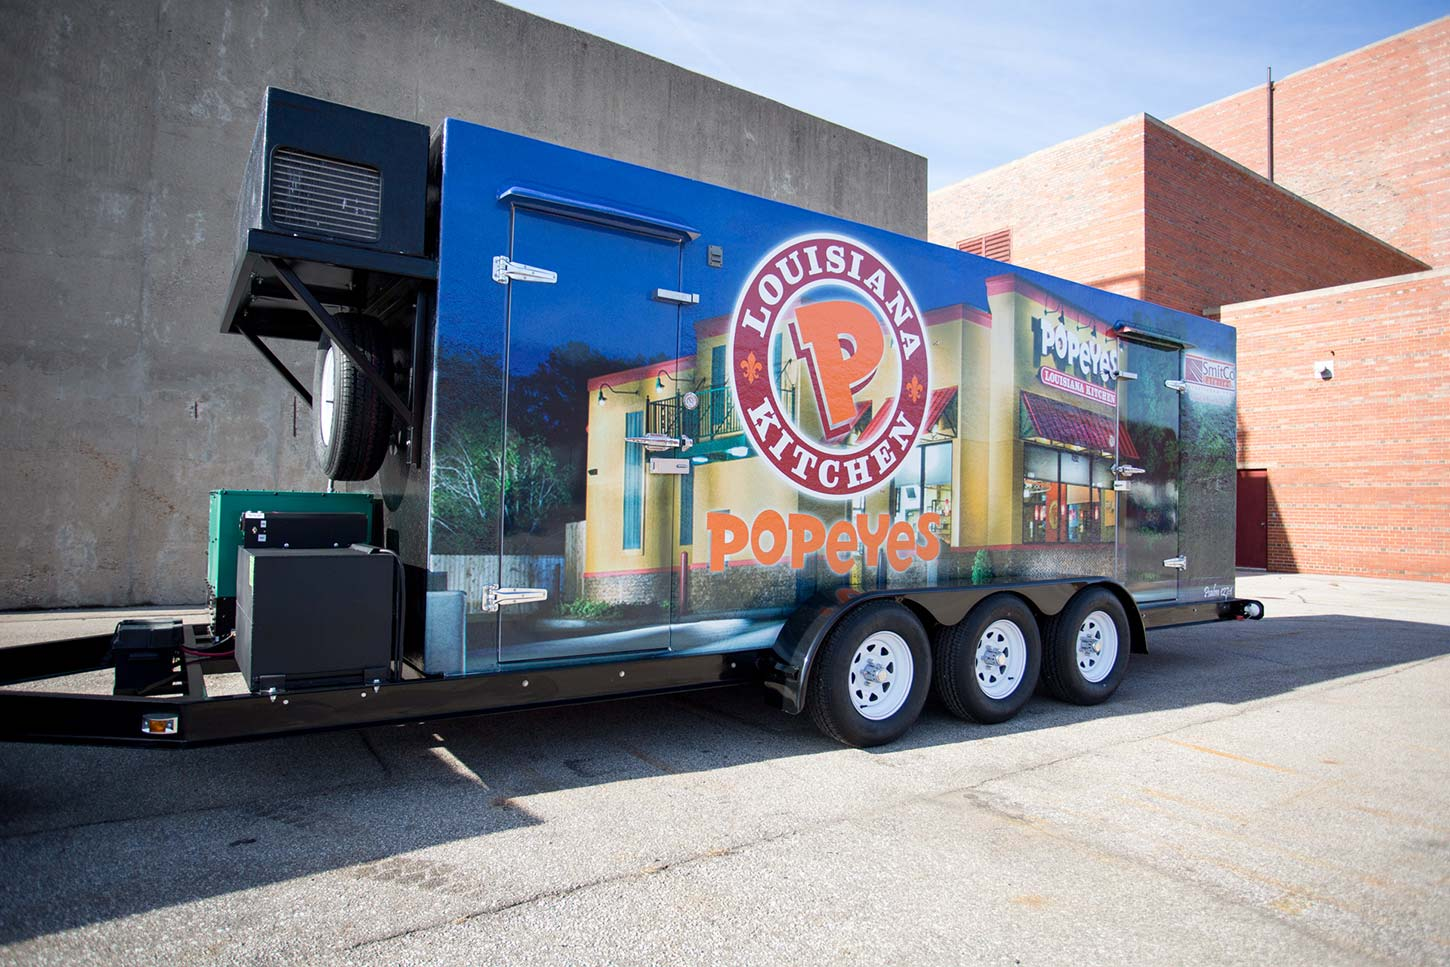 Popeyes industrial refrigerated trailer